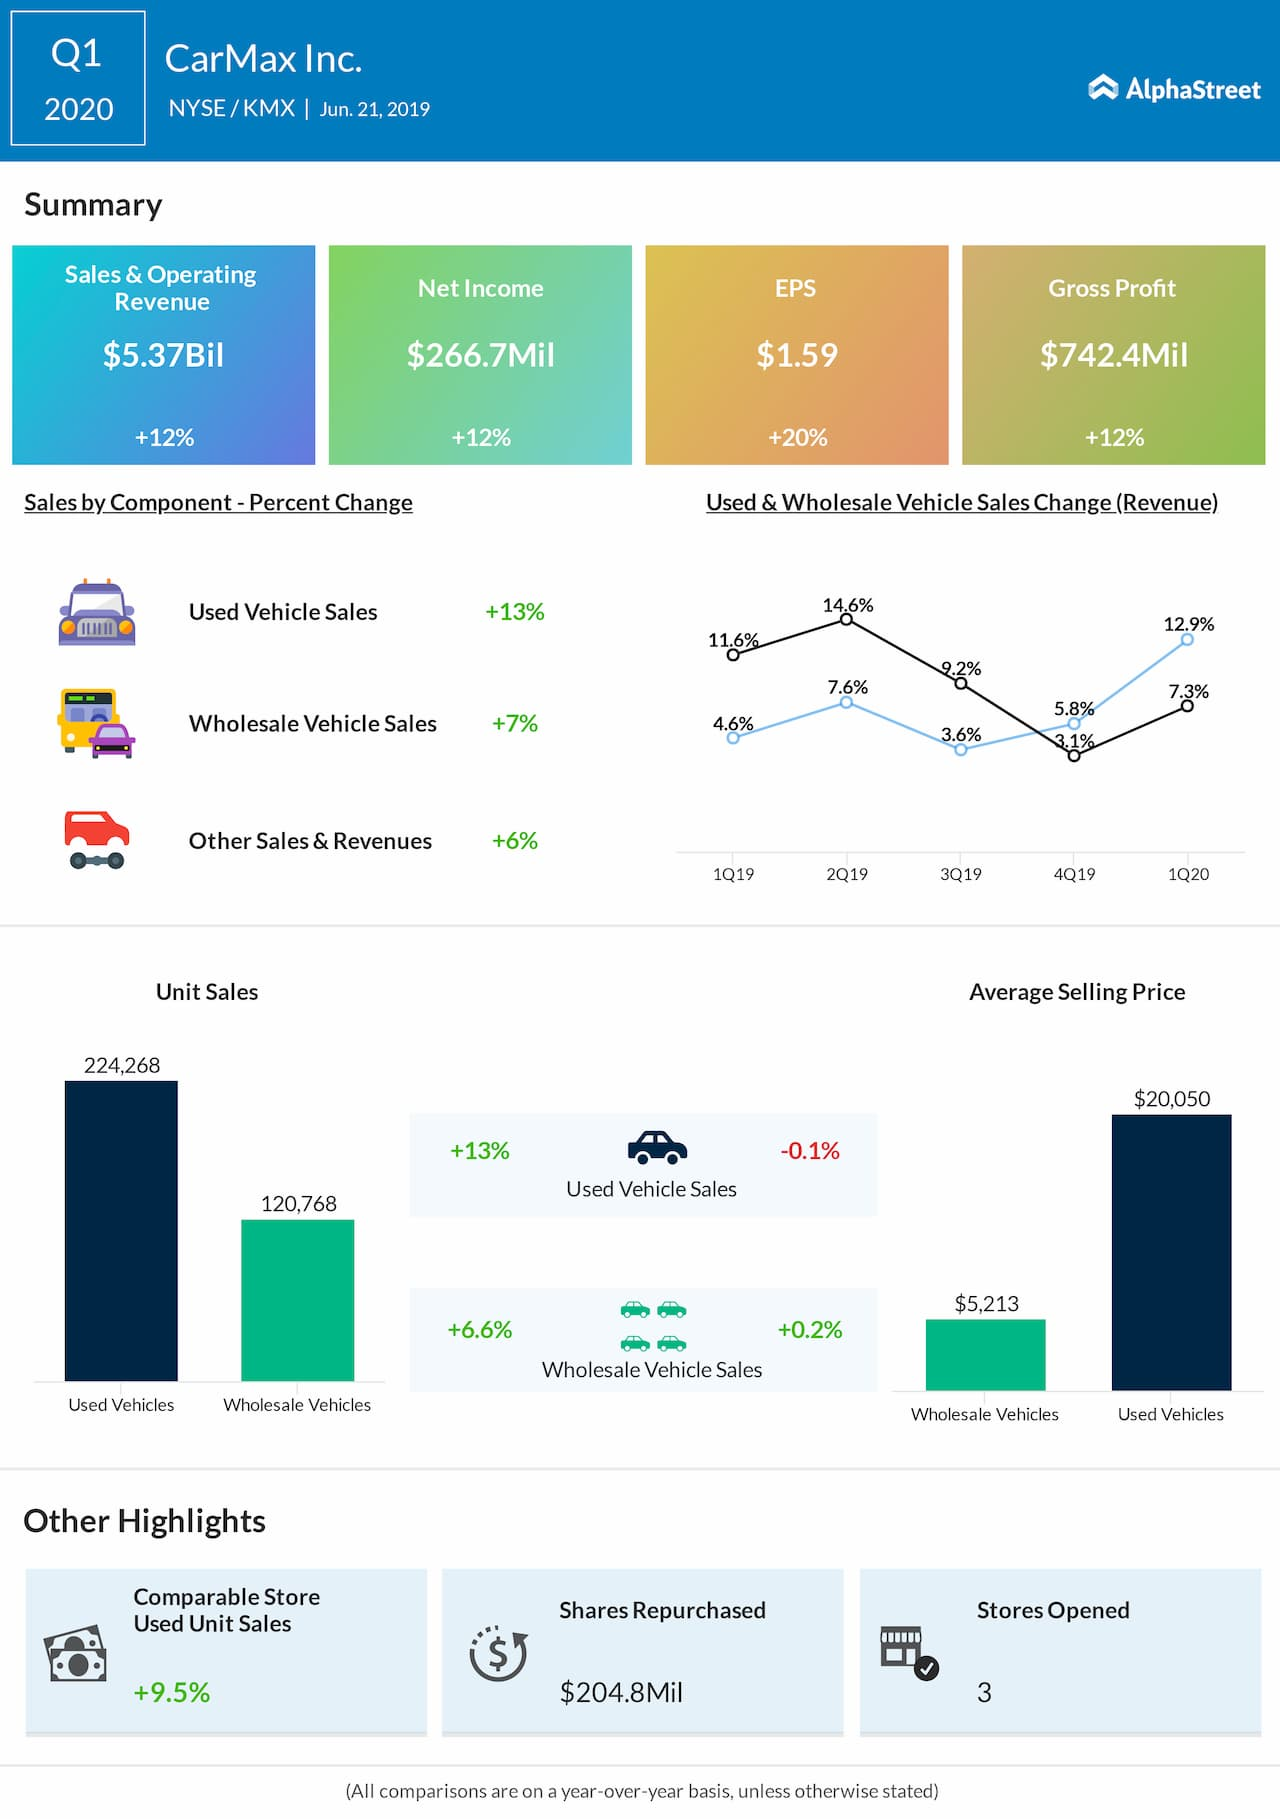 CarMax first quarter 2020 earnings snapshot